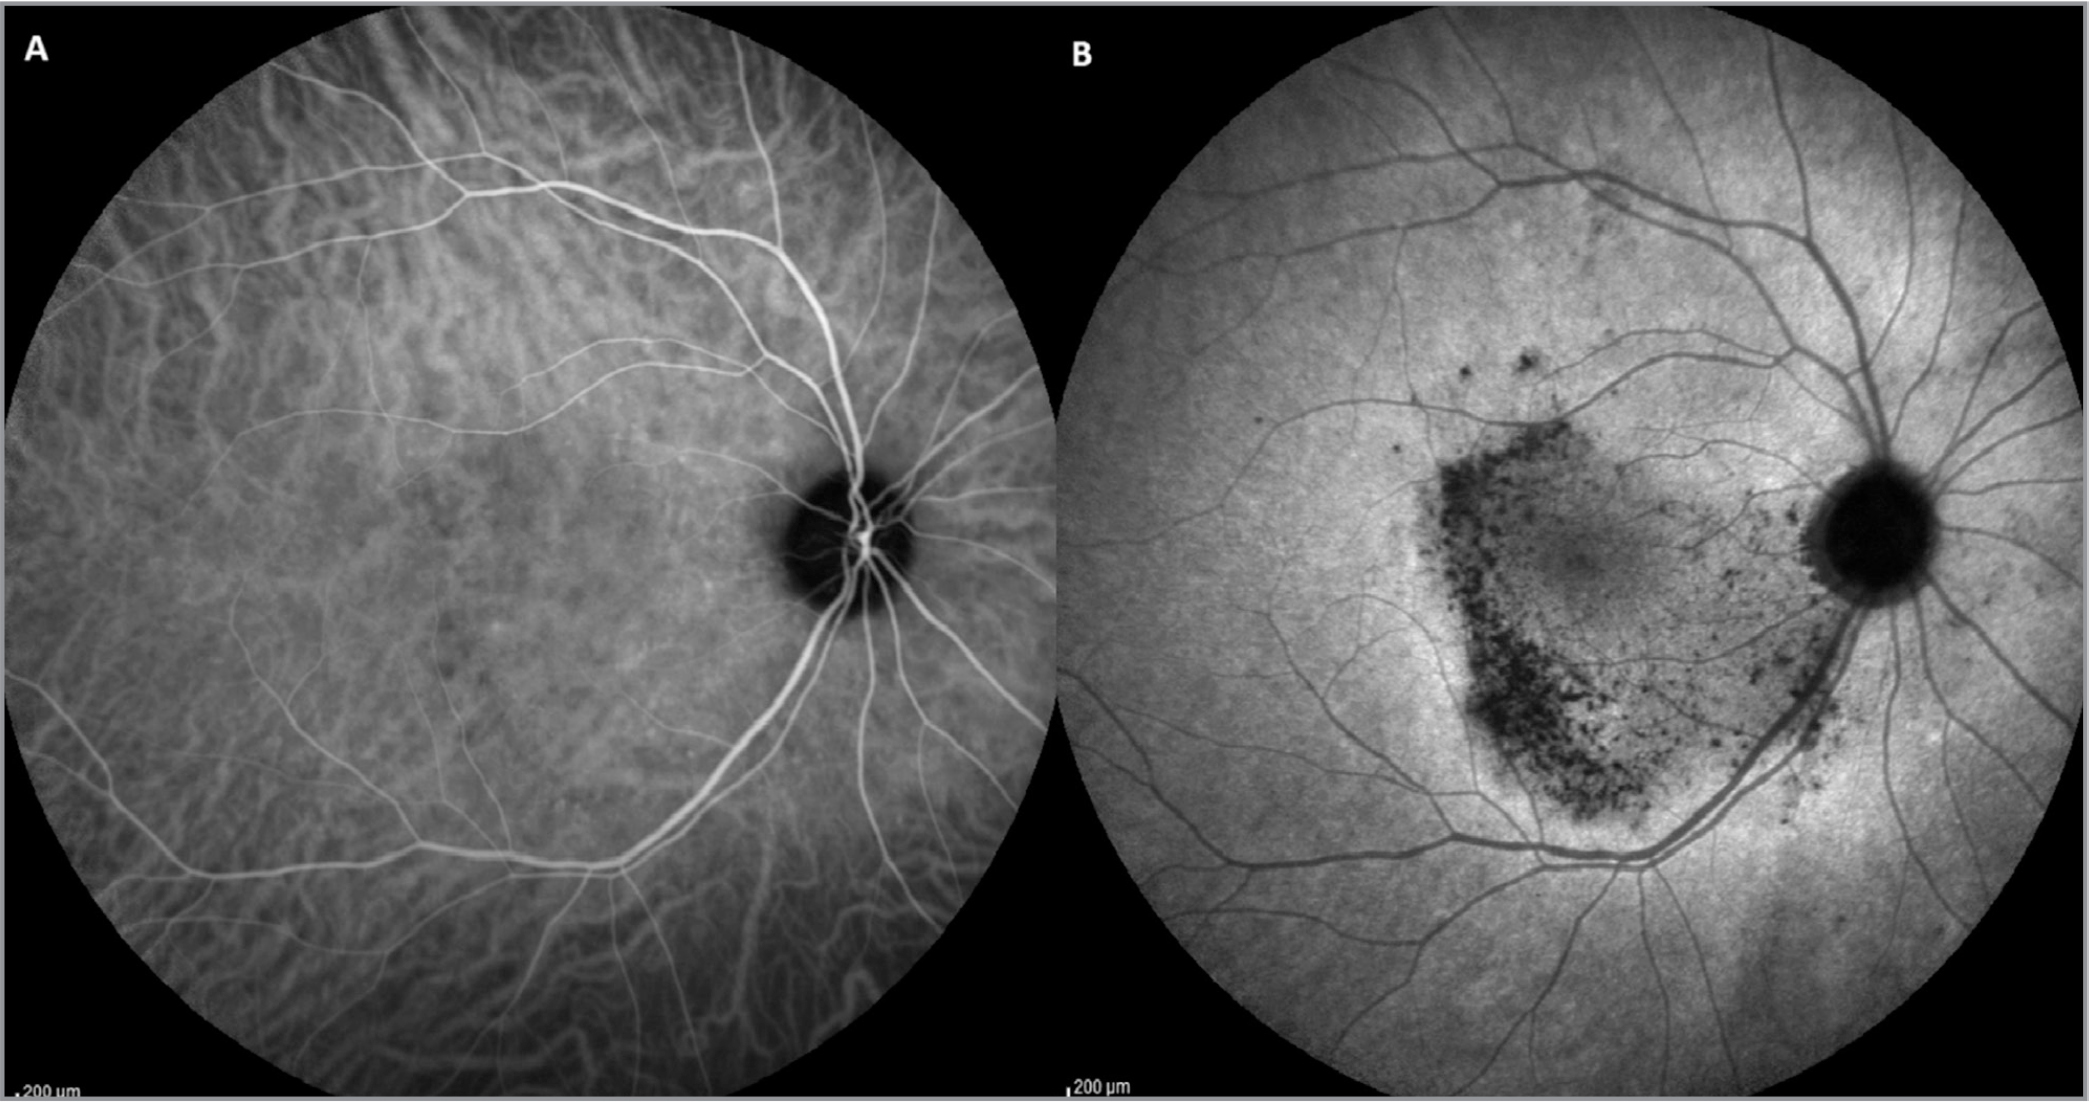 (A, B) Indocyanine green angiography showed hypofluorescent areas in the early stages corresponding to the lesion of spectral-domain optical coherence tomography (A). This hypofluorescence persisted also in the late stages of the examination (B).